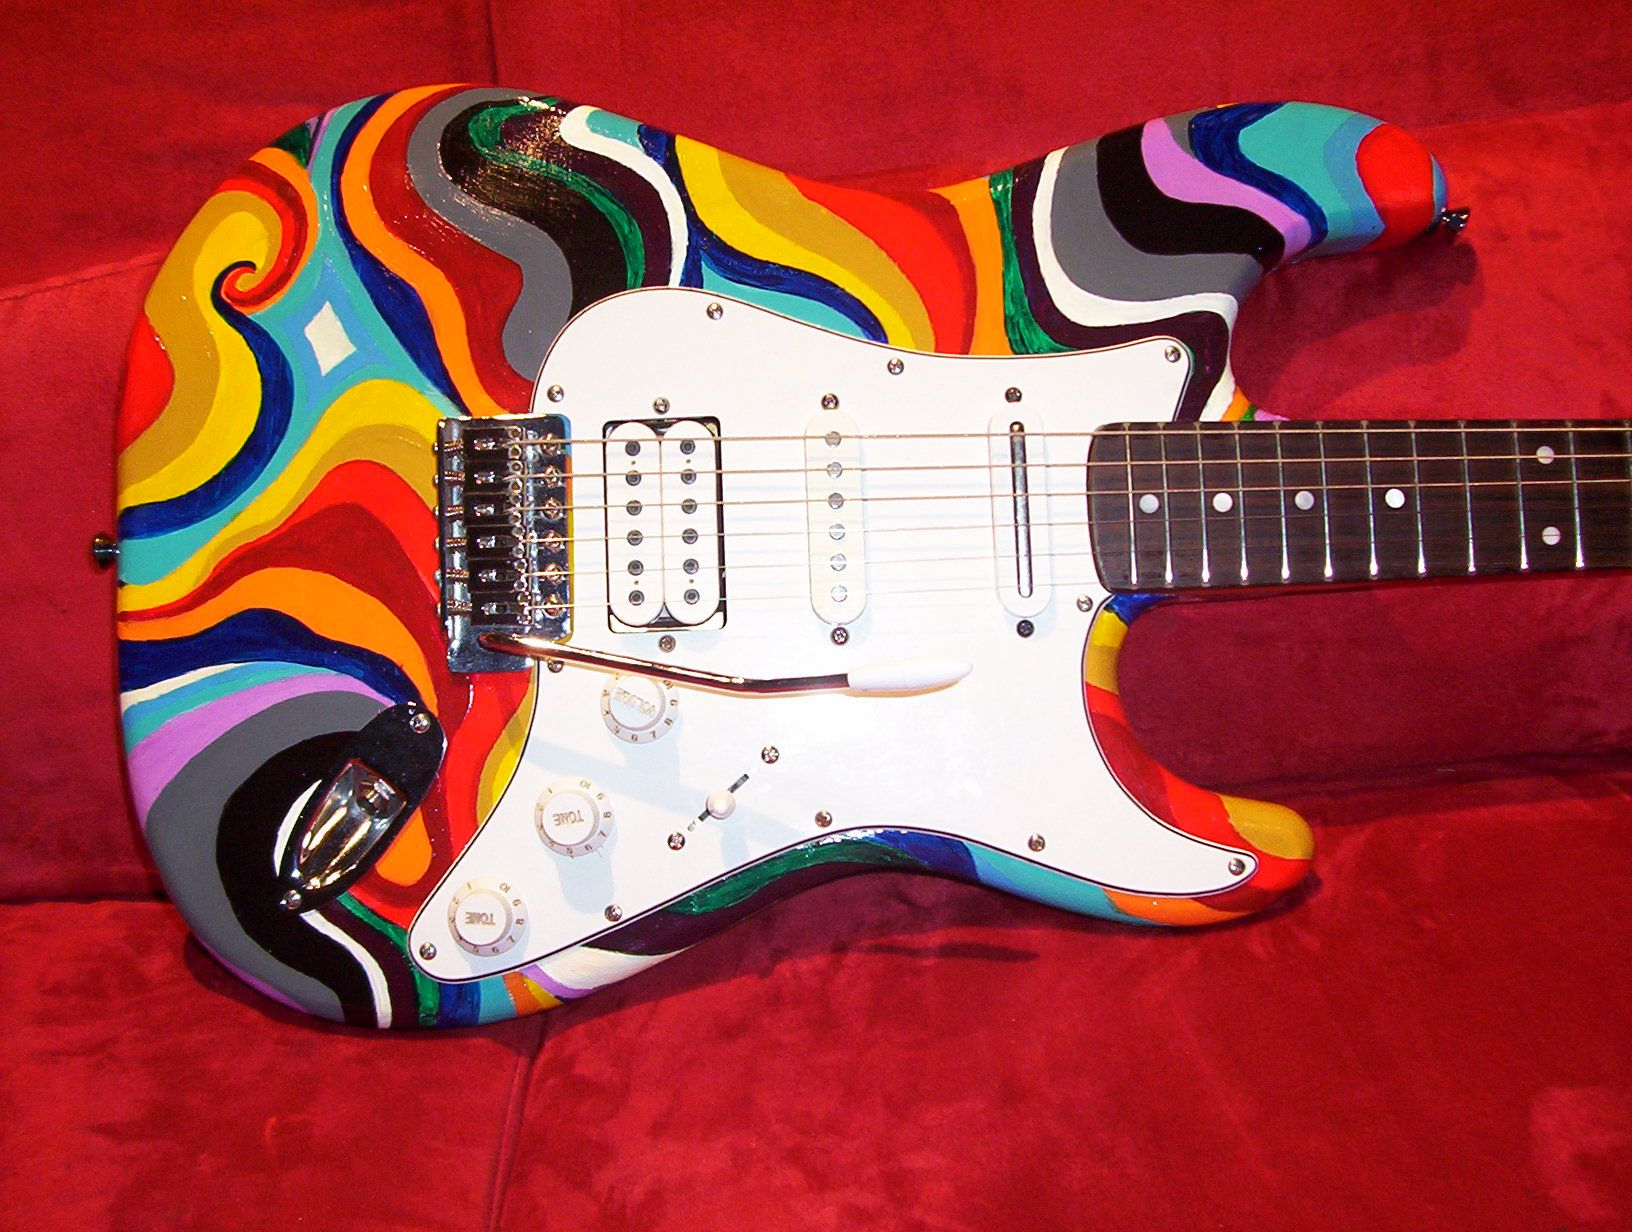 Cool paint job | Guitar | Pinterest | Guitars and Guitar ...